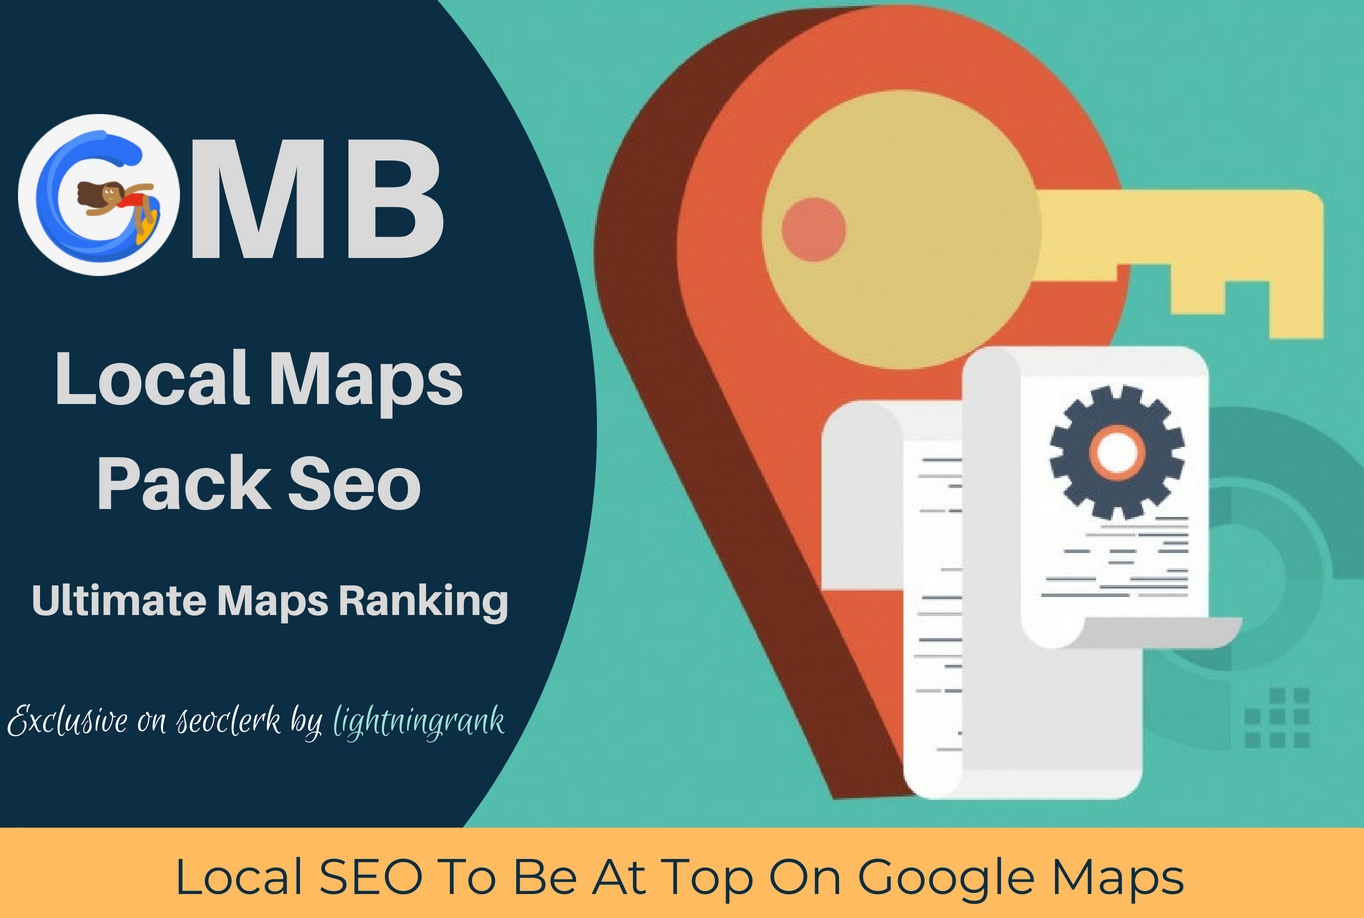 Gmb Local Maps Pack SEO Stacking,  Google Maps Ranking